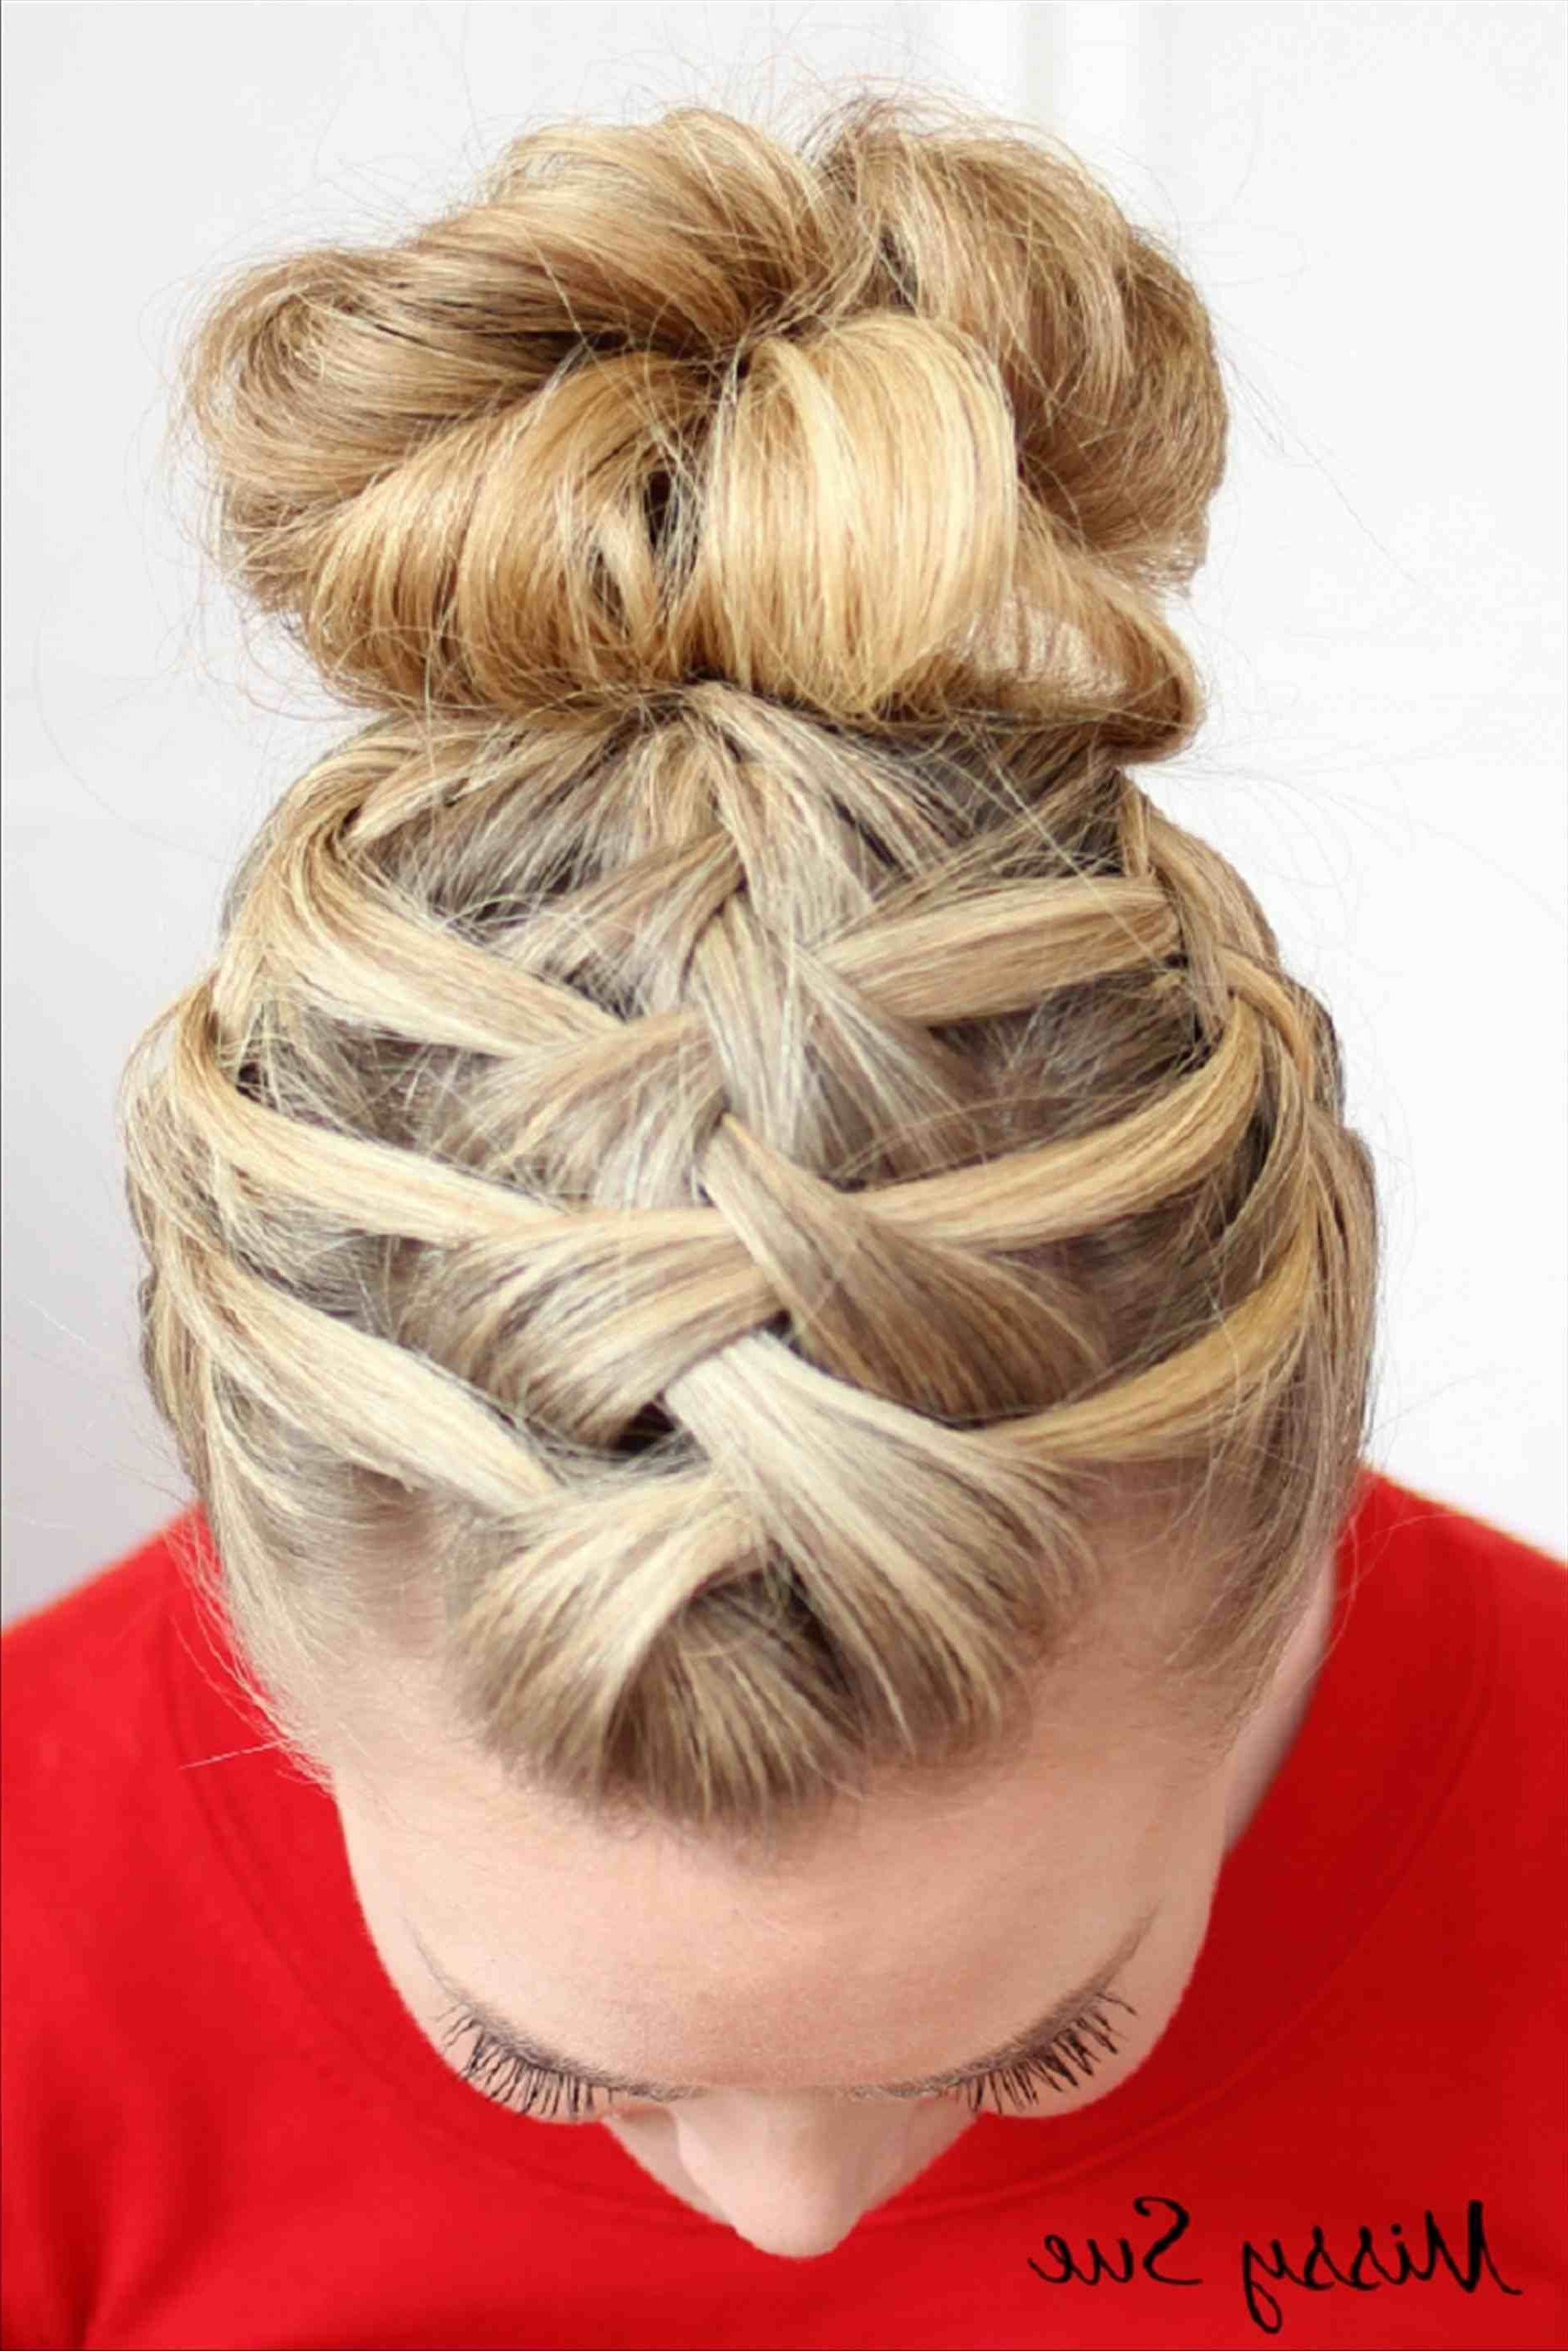 Preferred Braided Hairstyles For Dance Inside Updo Hairstyles For Girls Workout Great Braided Hairstyles Dance (View 13 of 15)